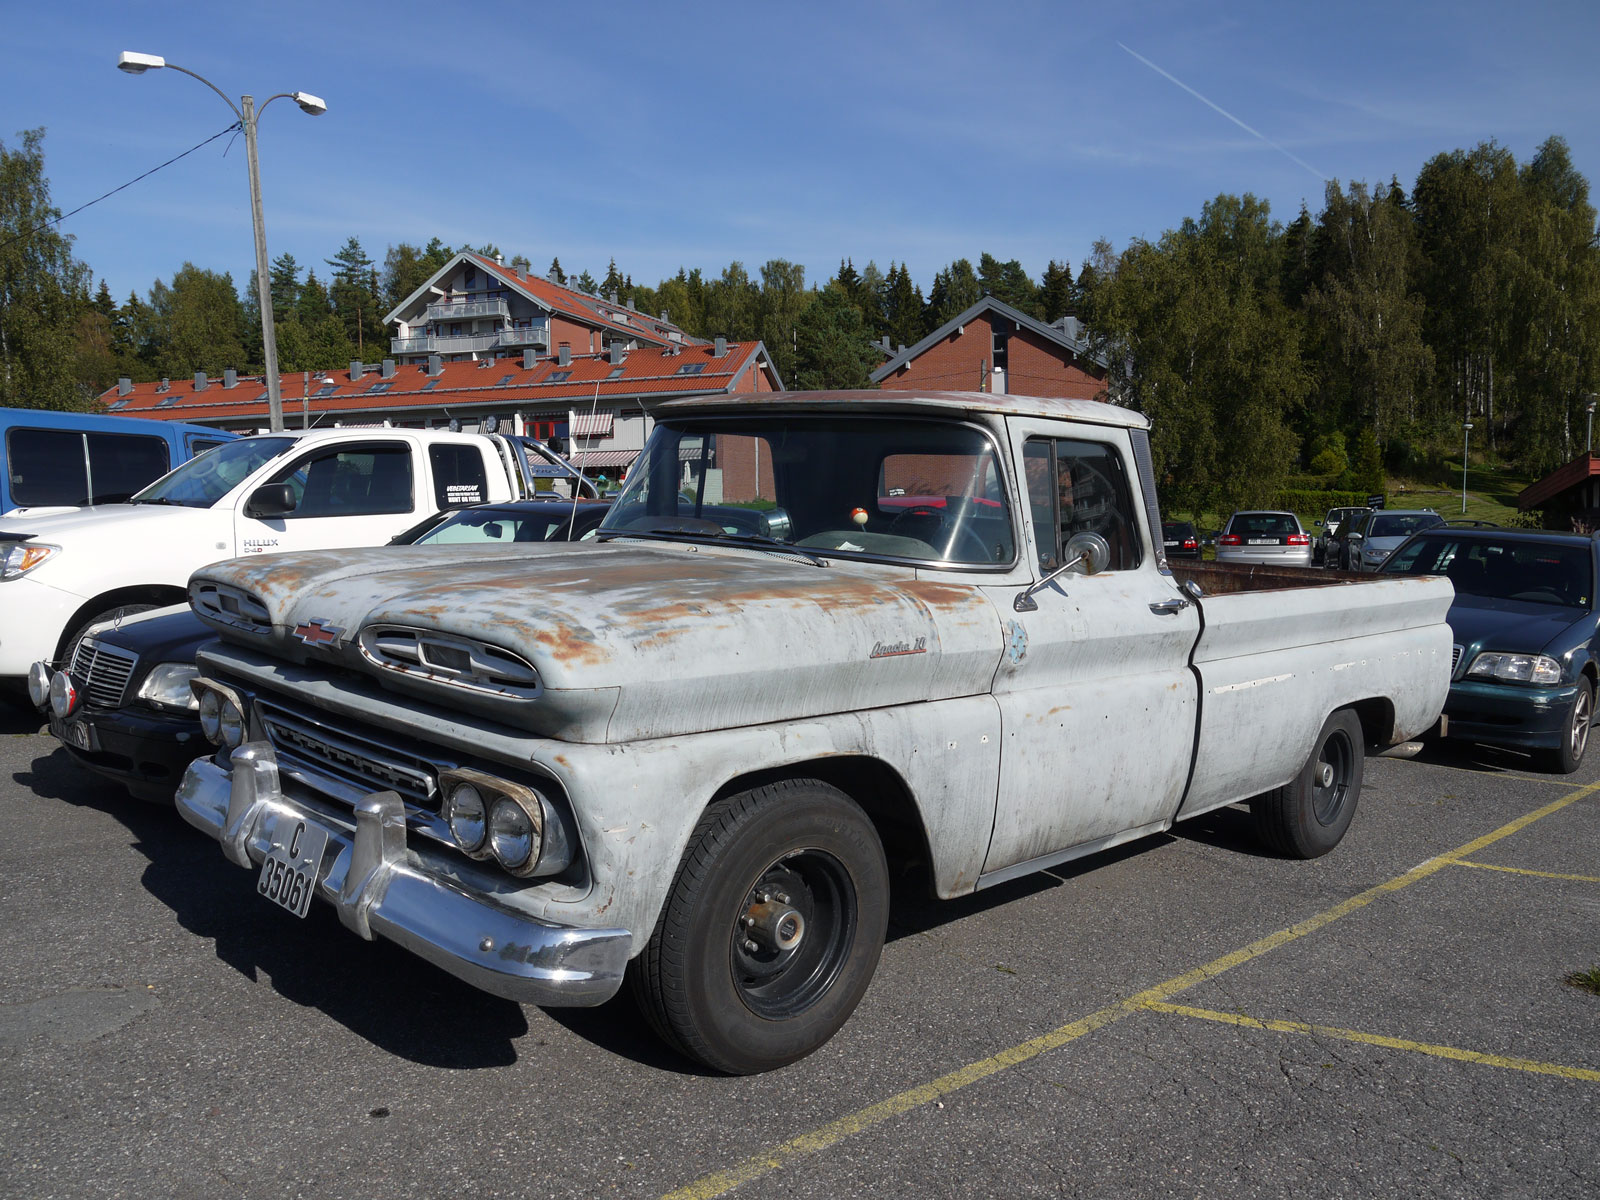 1961 Chevrolet Fleetside Pickup Oslo Norway parked cars